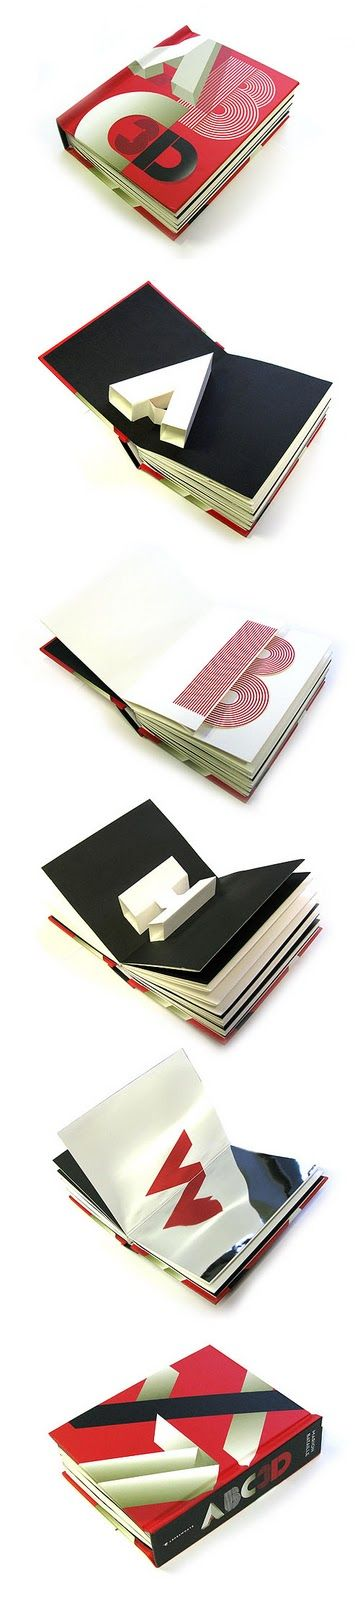 10 by Marion Bataille  (Pop-Up Book)